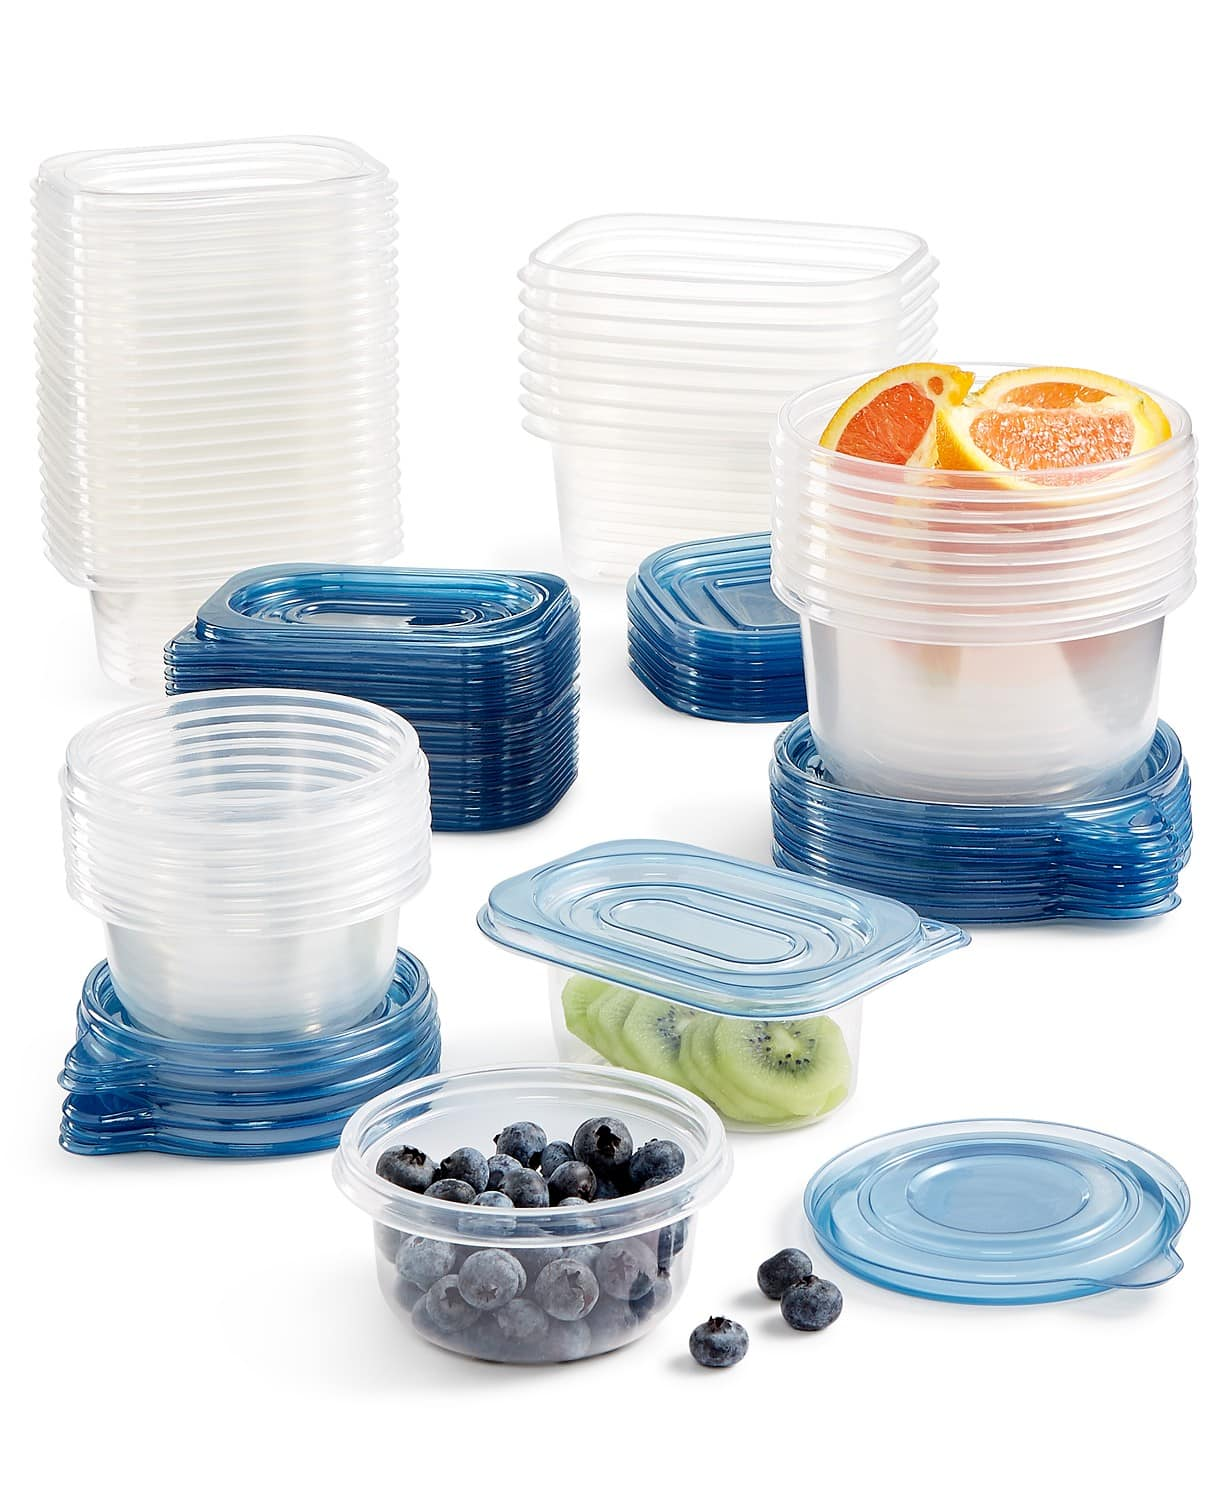 100-Pc Art & Cook Food Storage Container Set $15 + Free Store Pickup at Macy's